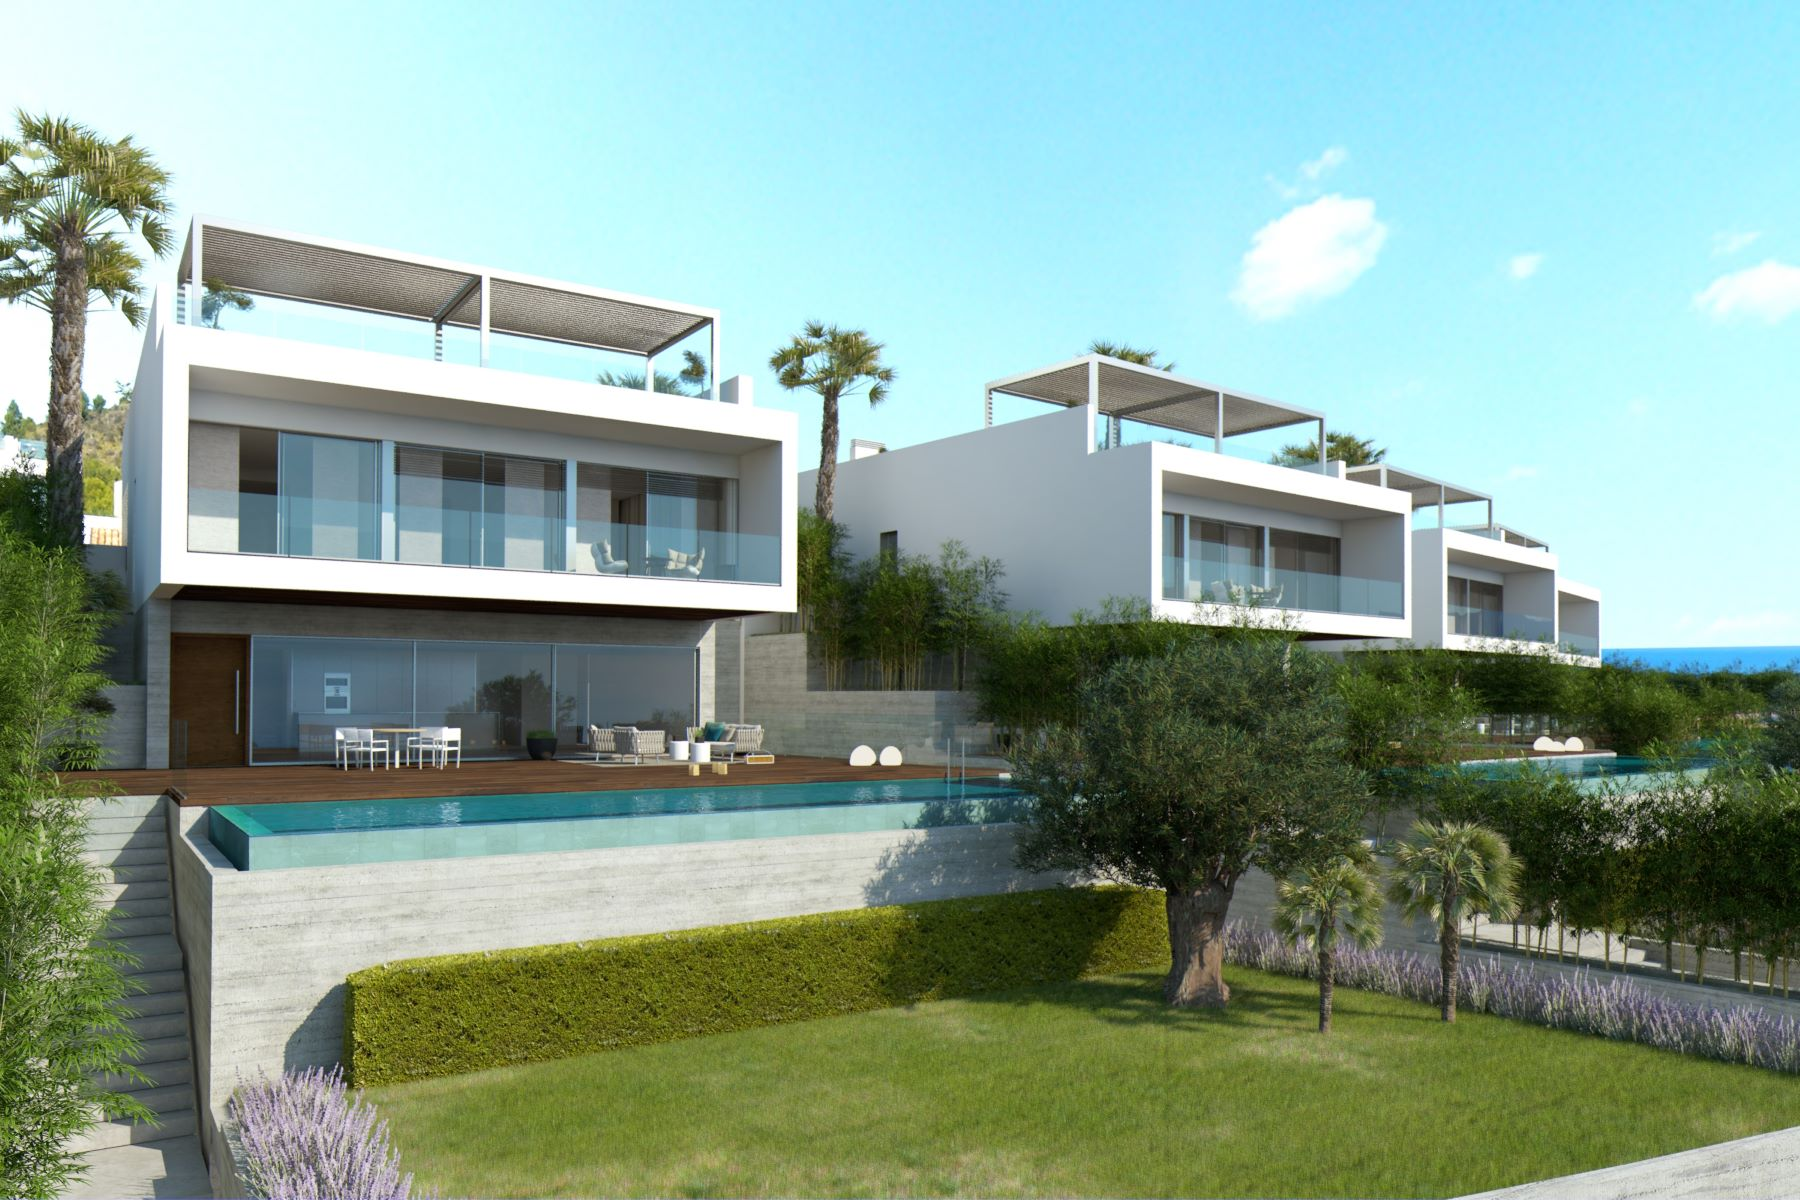 Single Family Home for Sale at Newly built luxury villas with sea views, Alcanada Alcudia, Mallorca, 07400 Spain